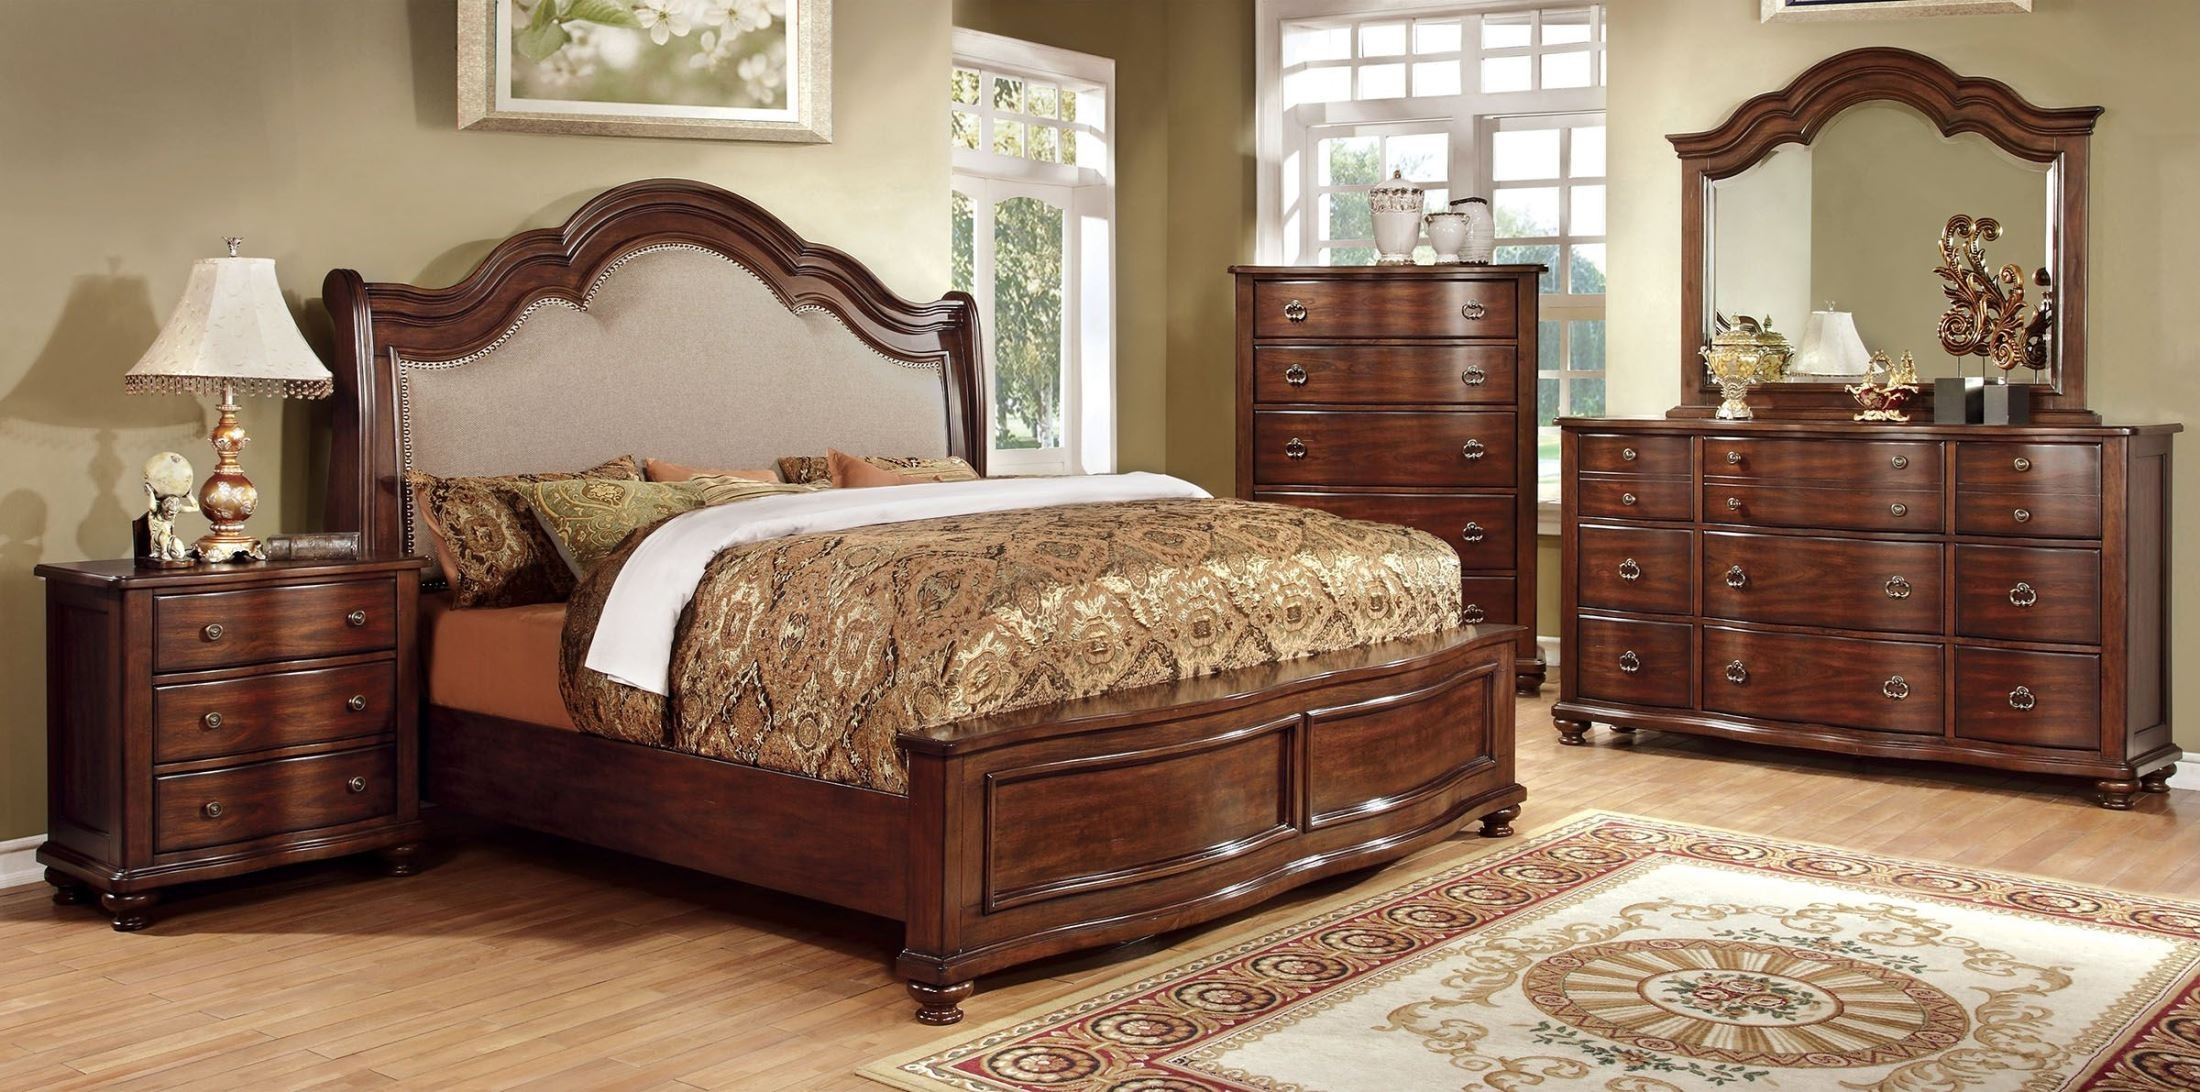 Bellavista Brown Cherry Bedroom Set From Furniture Of America (CM7350Q BED)  | Coleman Furniture